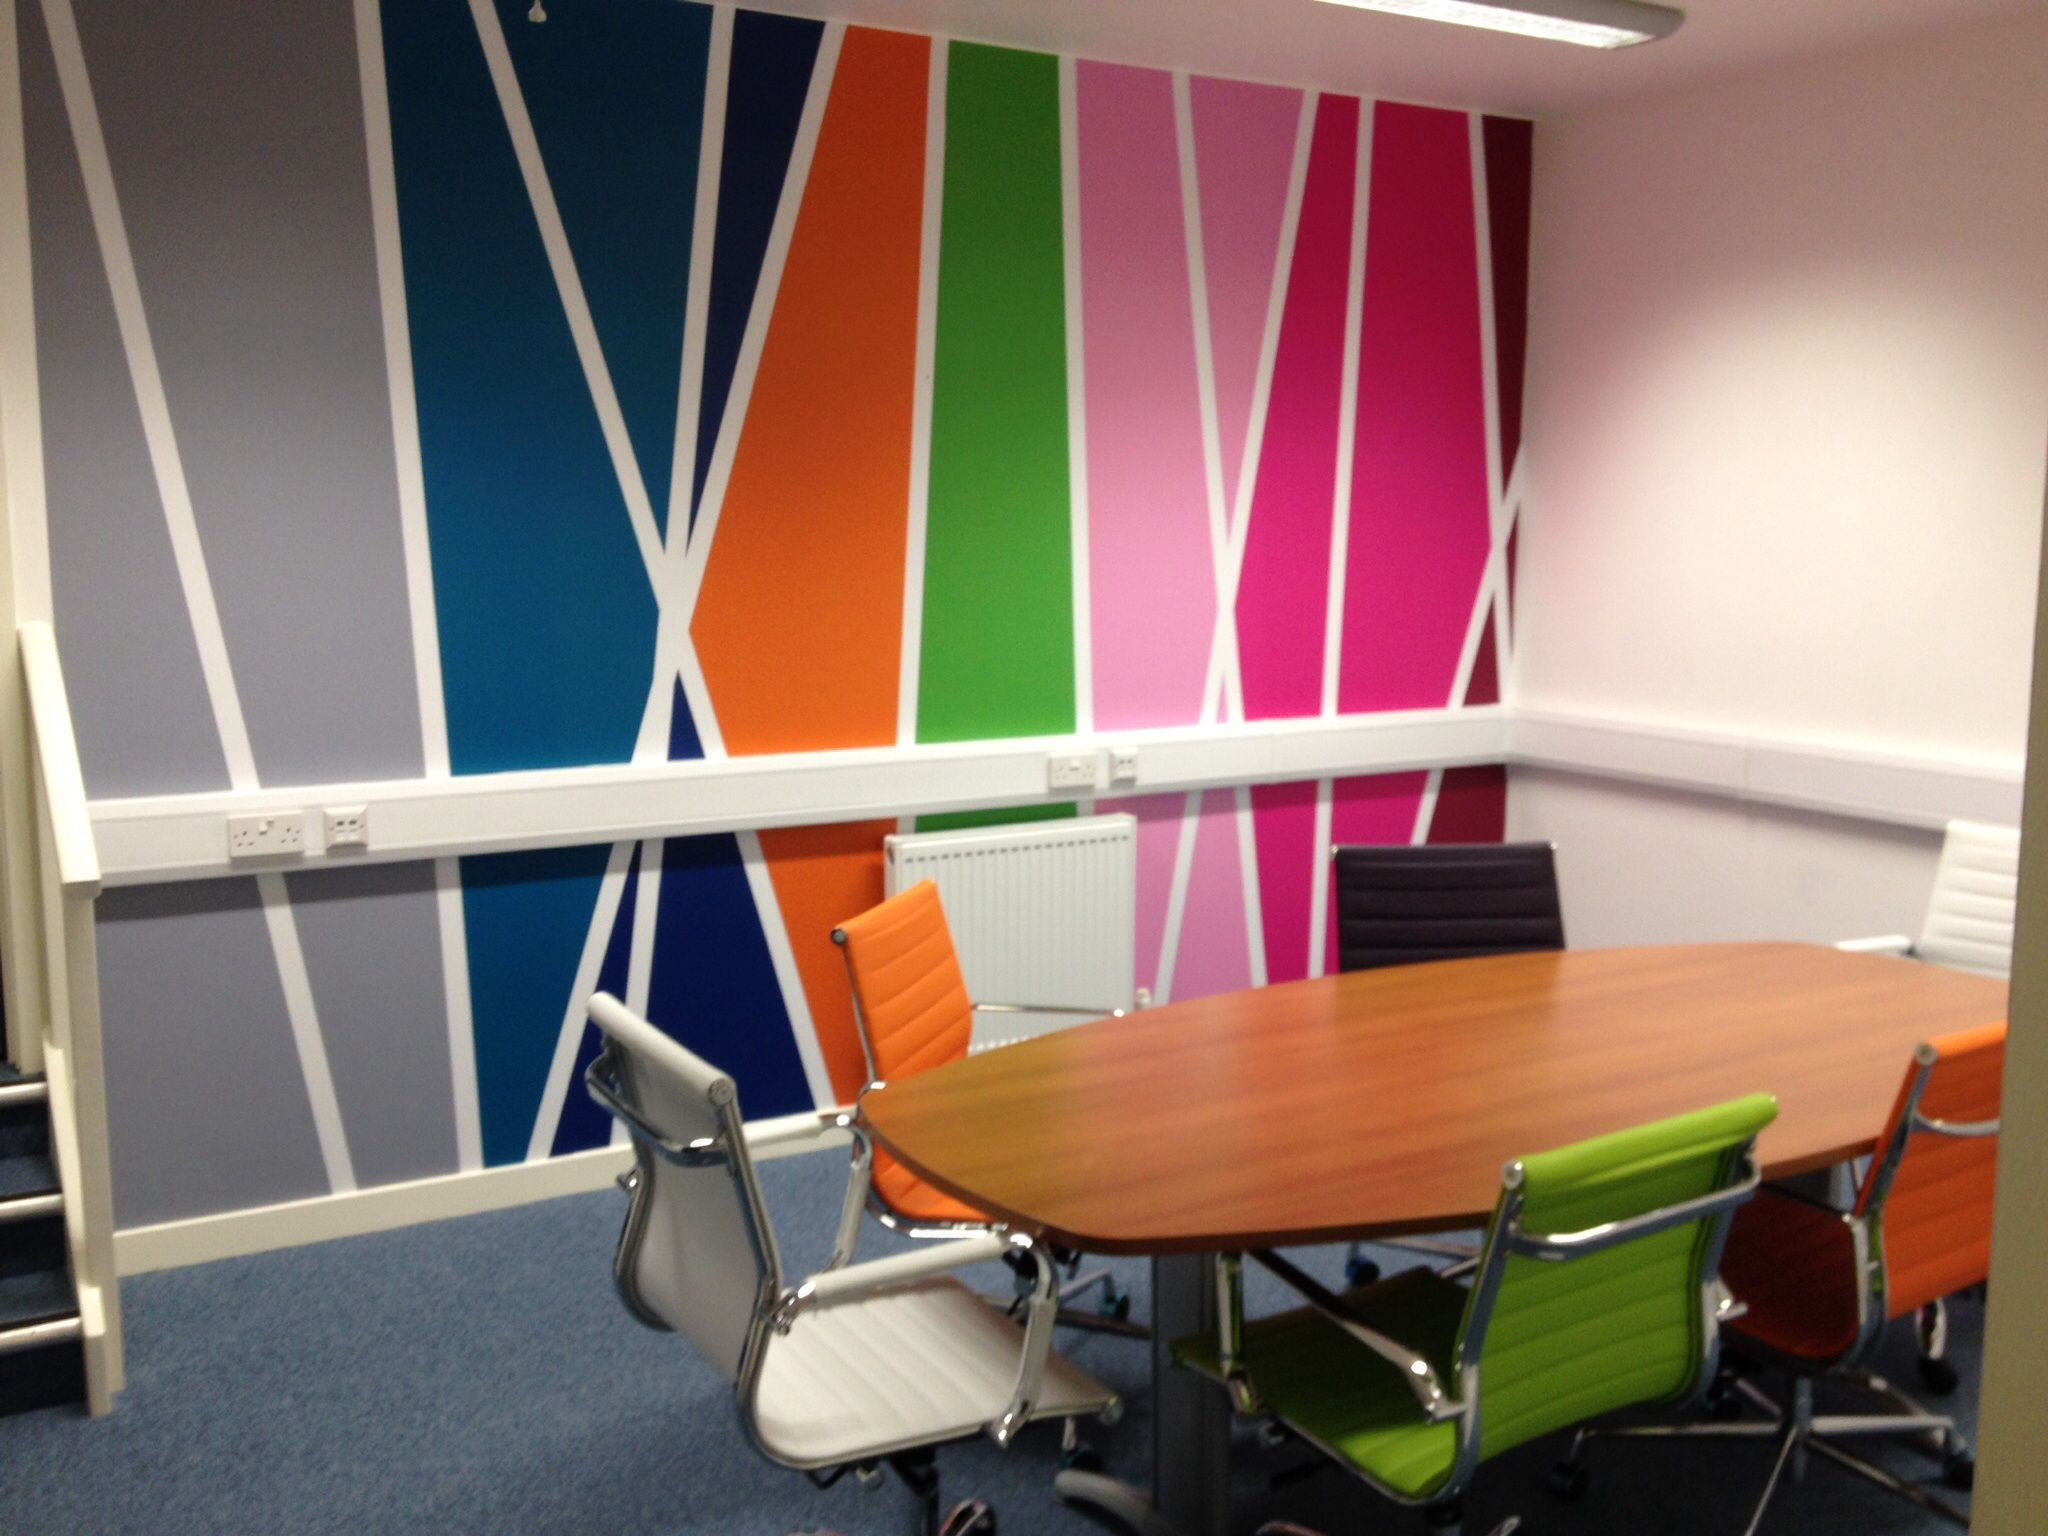 Colourful Meeting room wall graphics for office branding